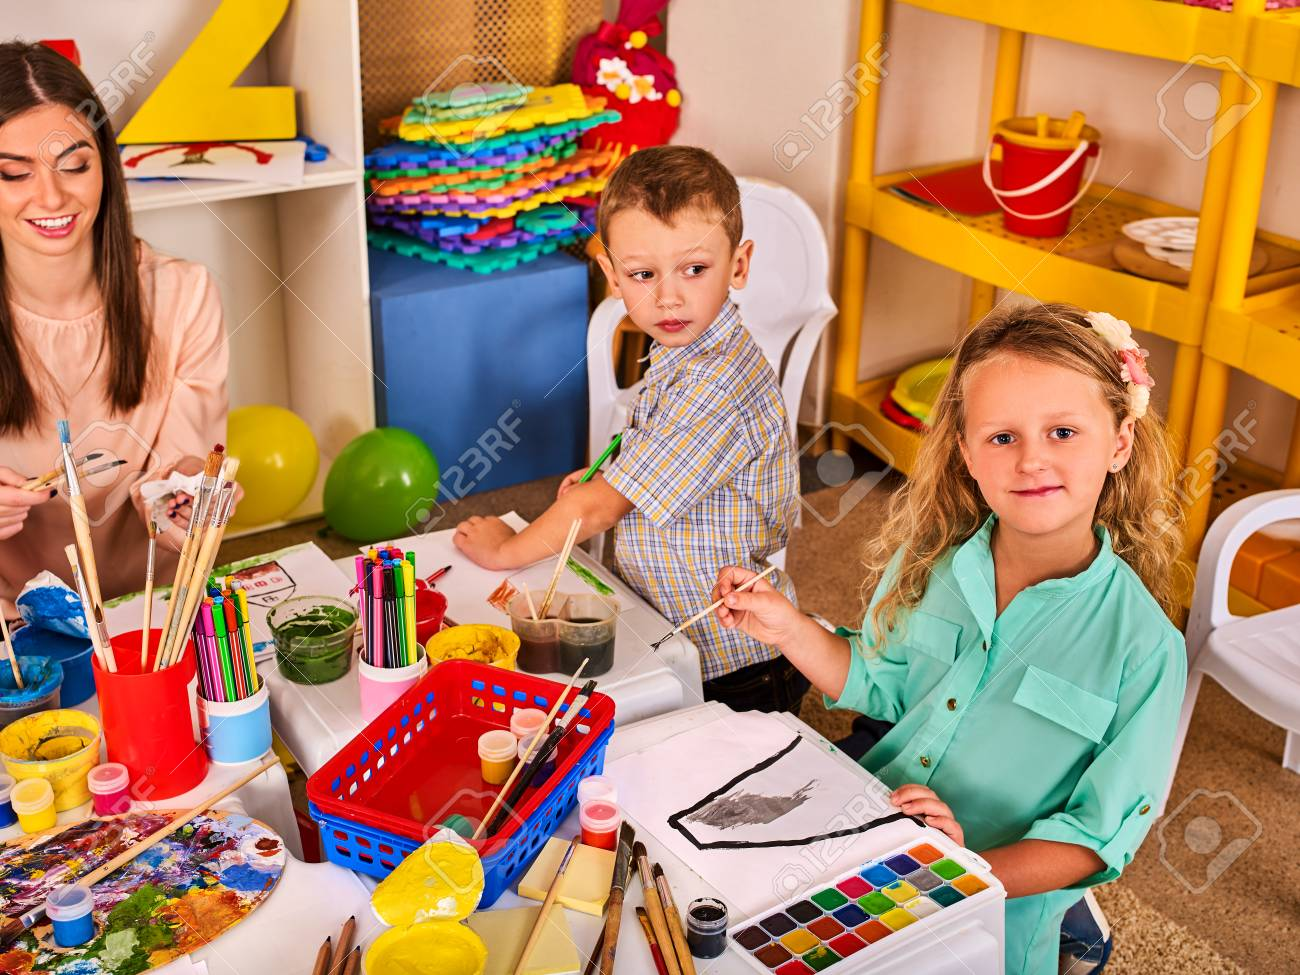 Kids Playroom Organization Of Children Painting And Drawing In ...